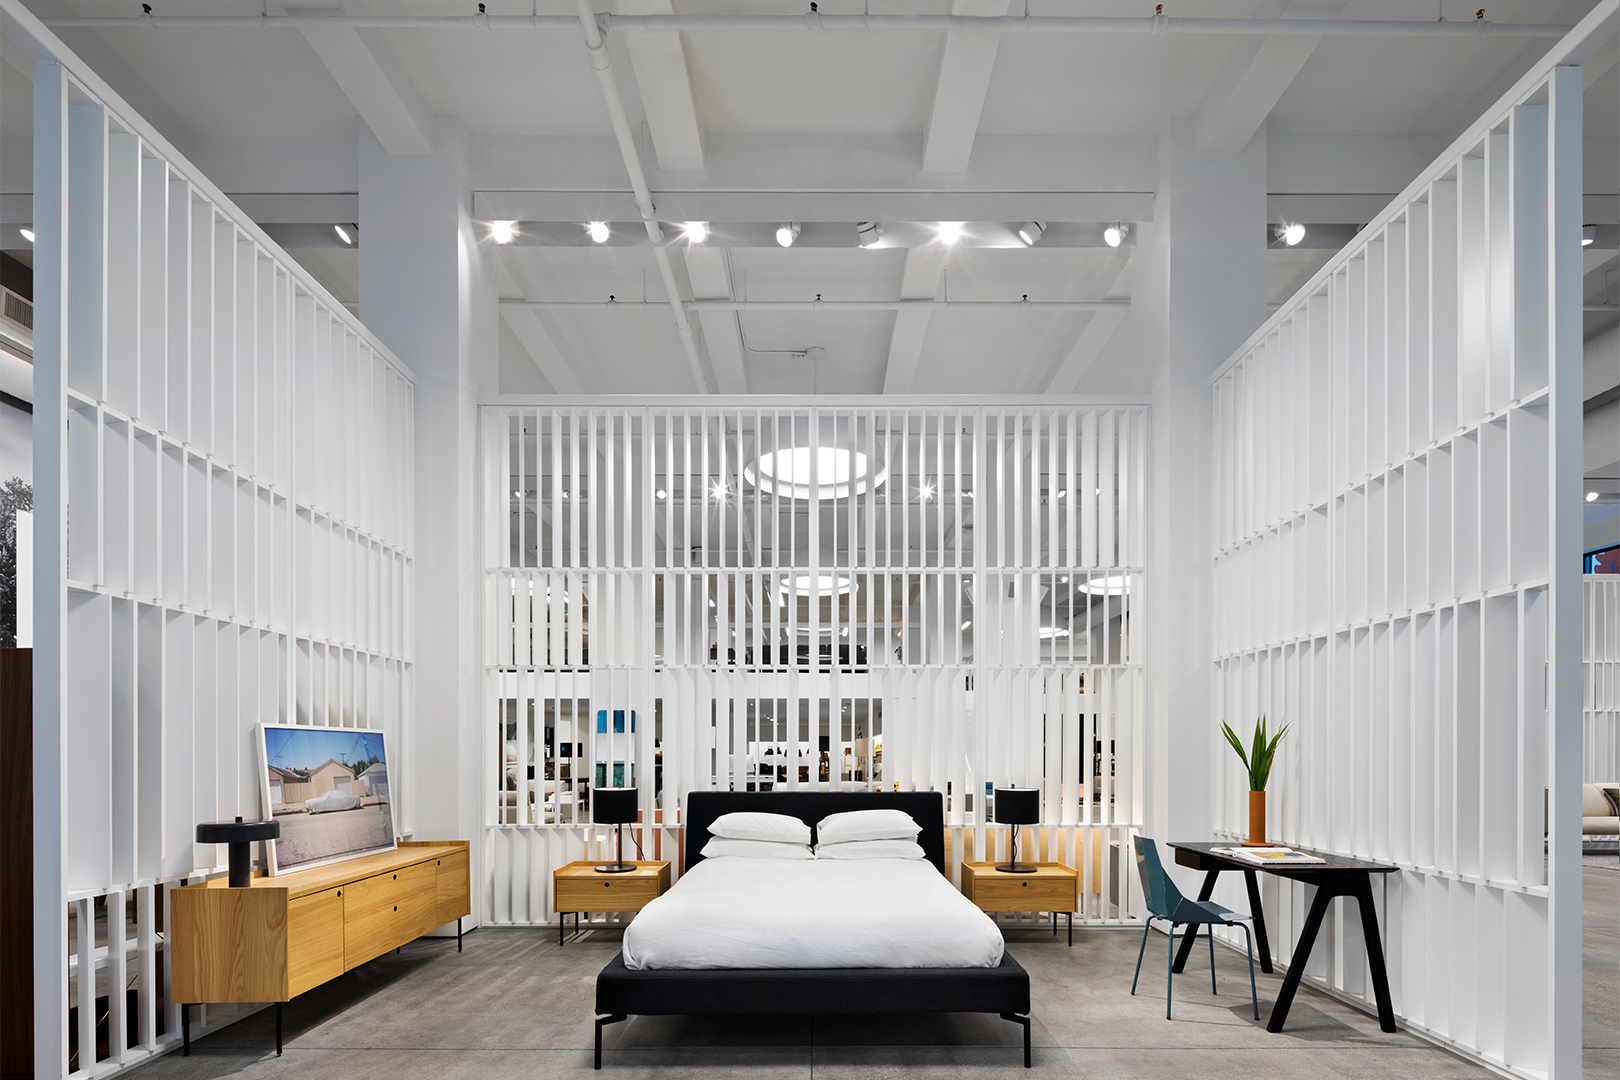 C 1746_07_2 Bed and Light.jpg